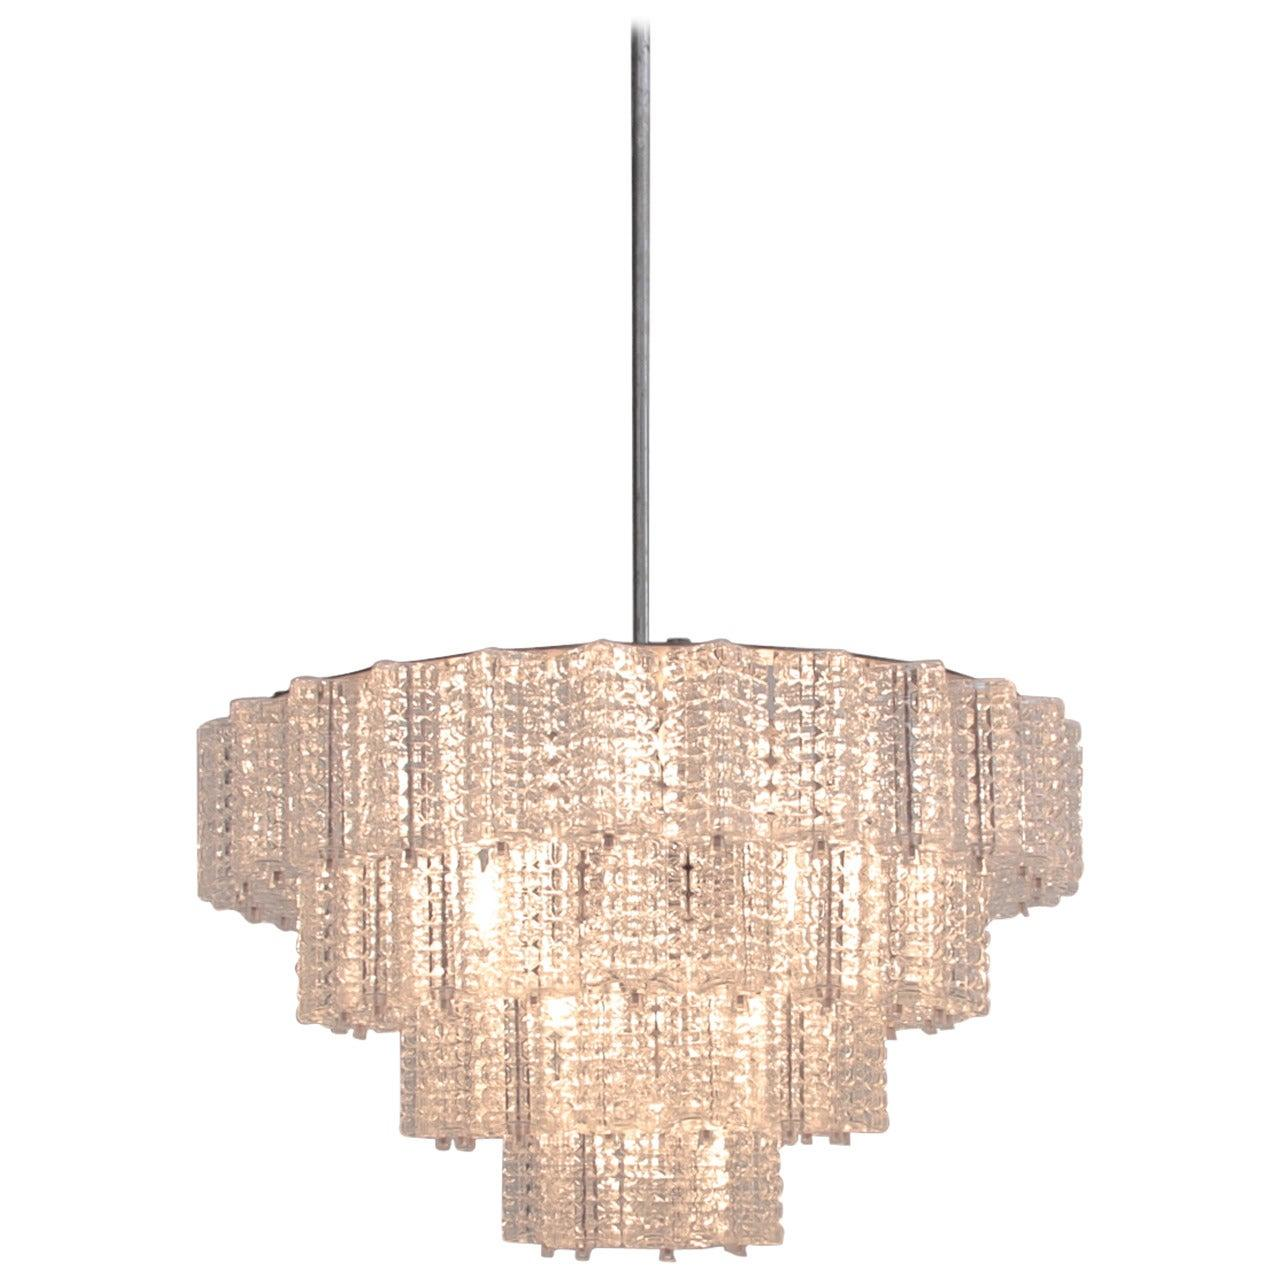 Extraordinary Huge and Rare Glass Chandelier by Austrolux